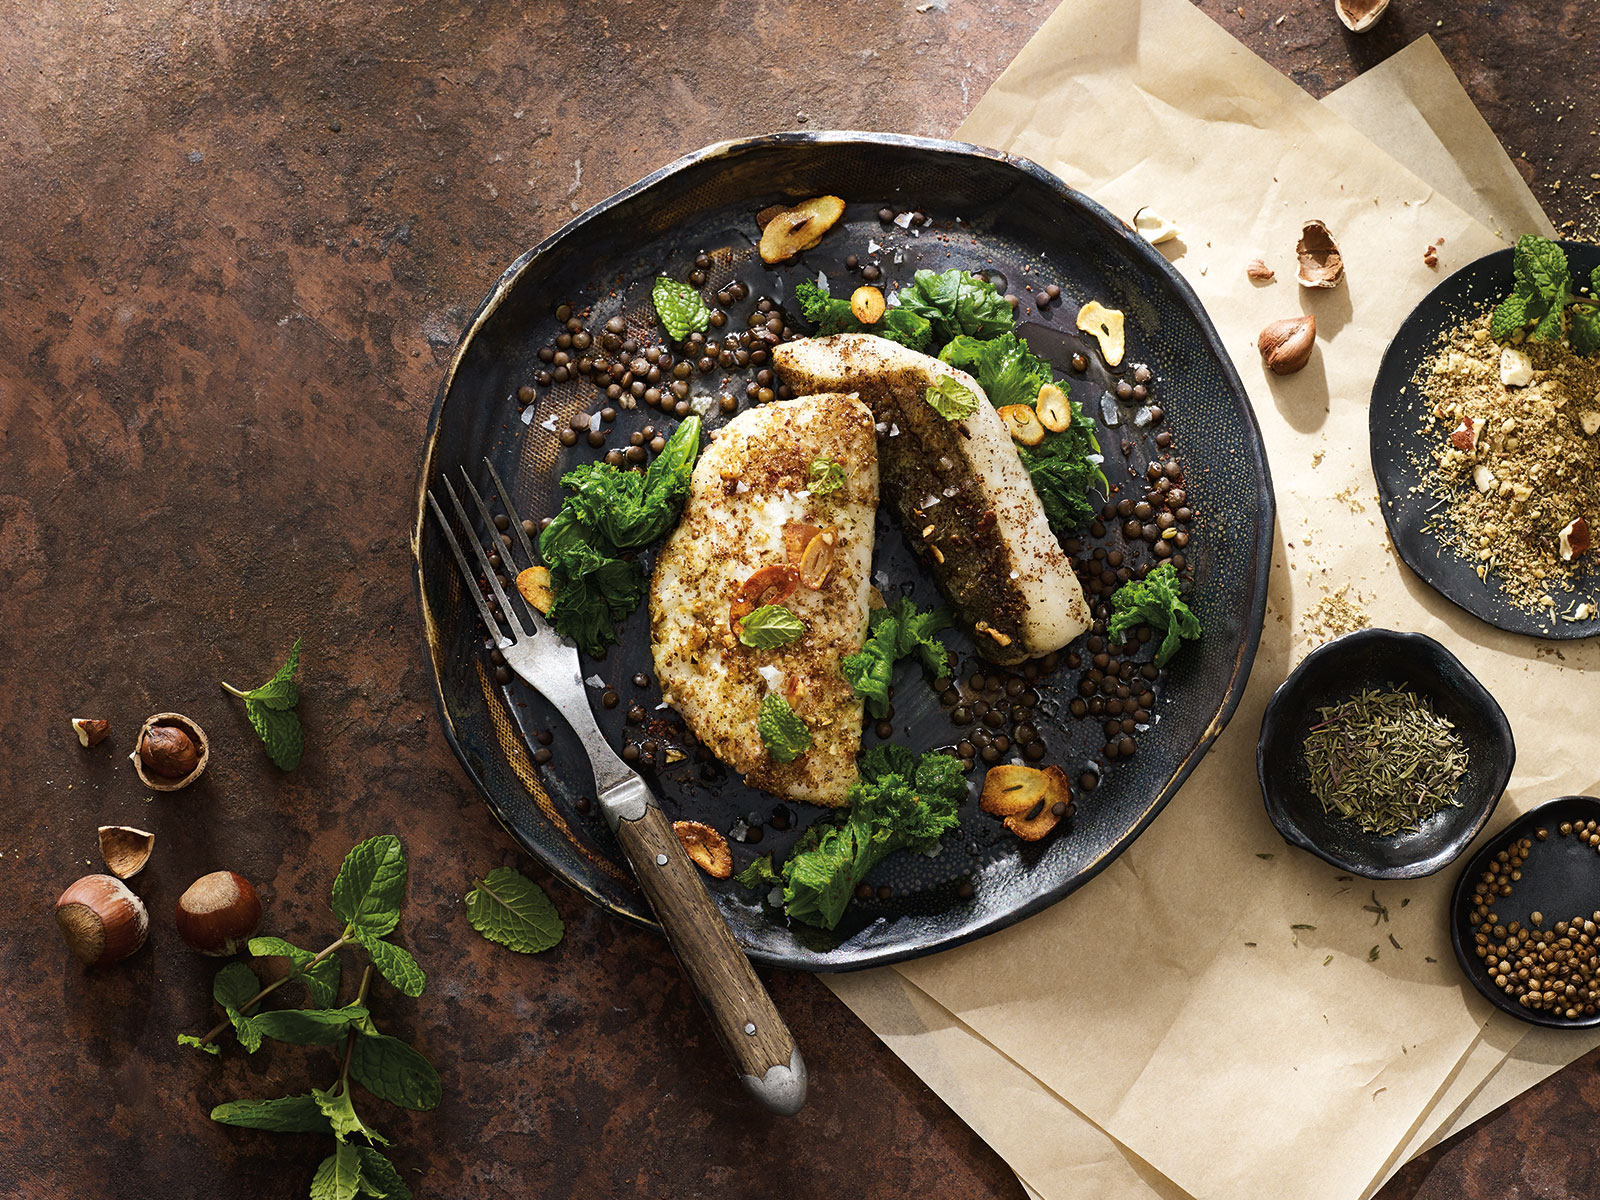 Dukkah-Crusted Wild Alaska Pollock with Lentils and Greens